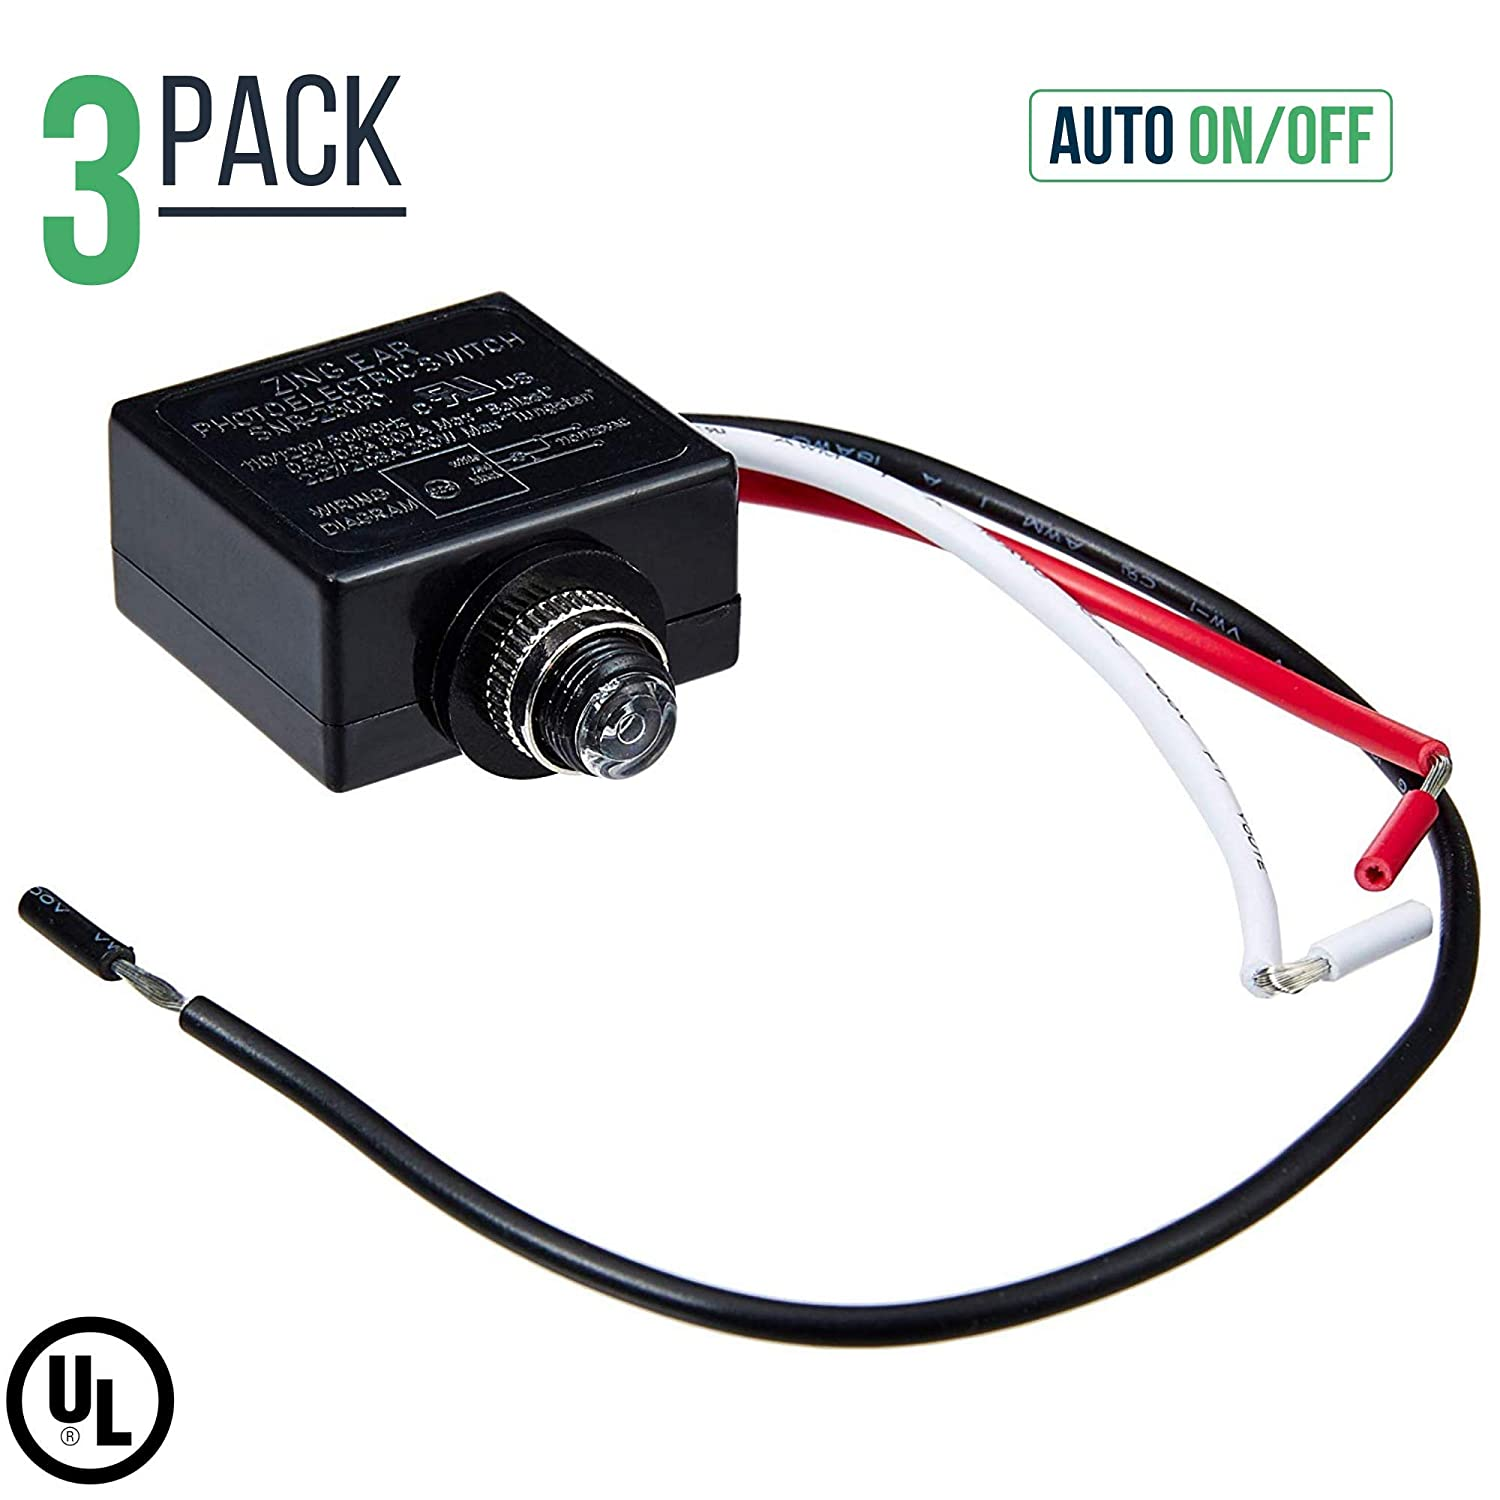 120 Volt Dusk To Dawn Photocell Photoeye Light Sensor Switch Auto Precision Photoelectric Wiring Diagram T15 On Off Use With Fluorescent Incandescent Or Led Bulbs Sockets